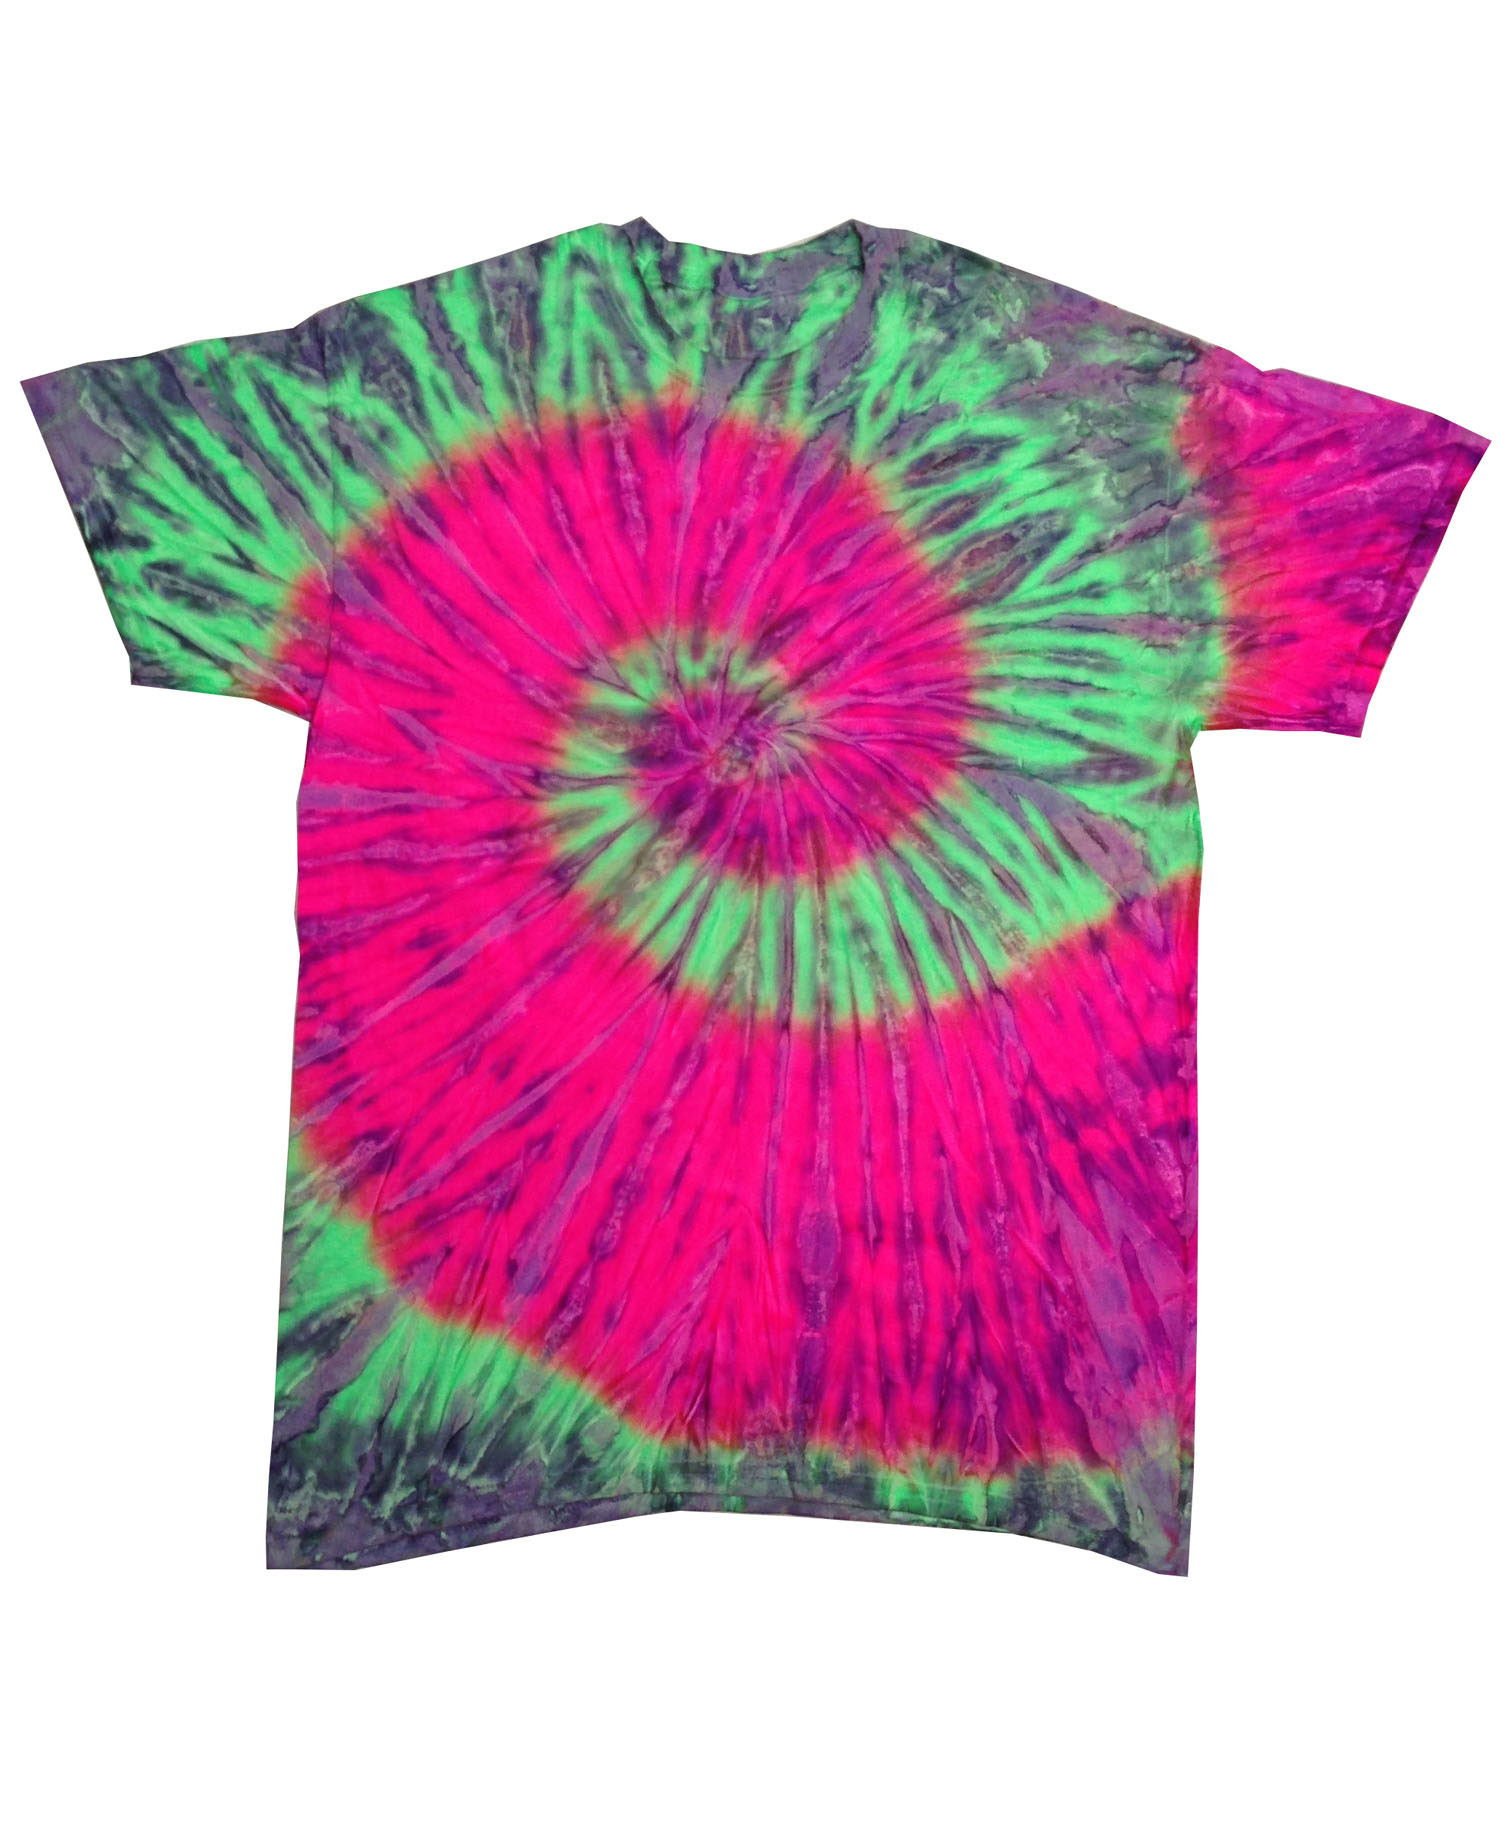 Colortone - T380P Watermelon Short Sleeve Tie Dye